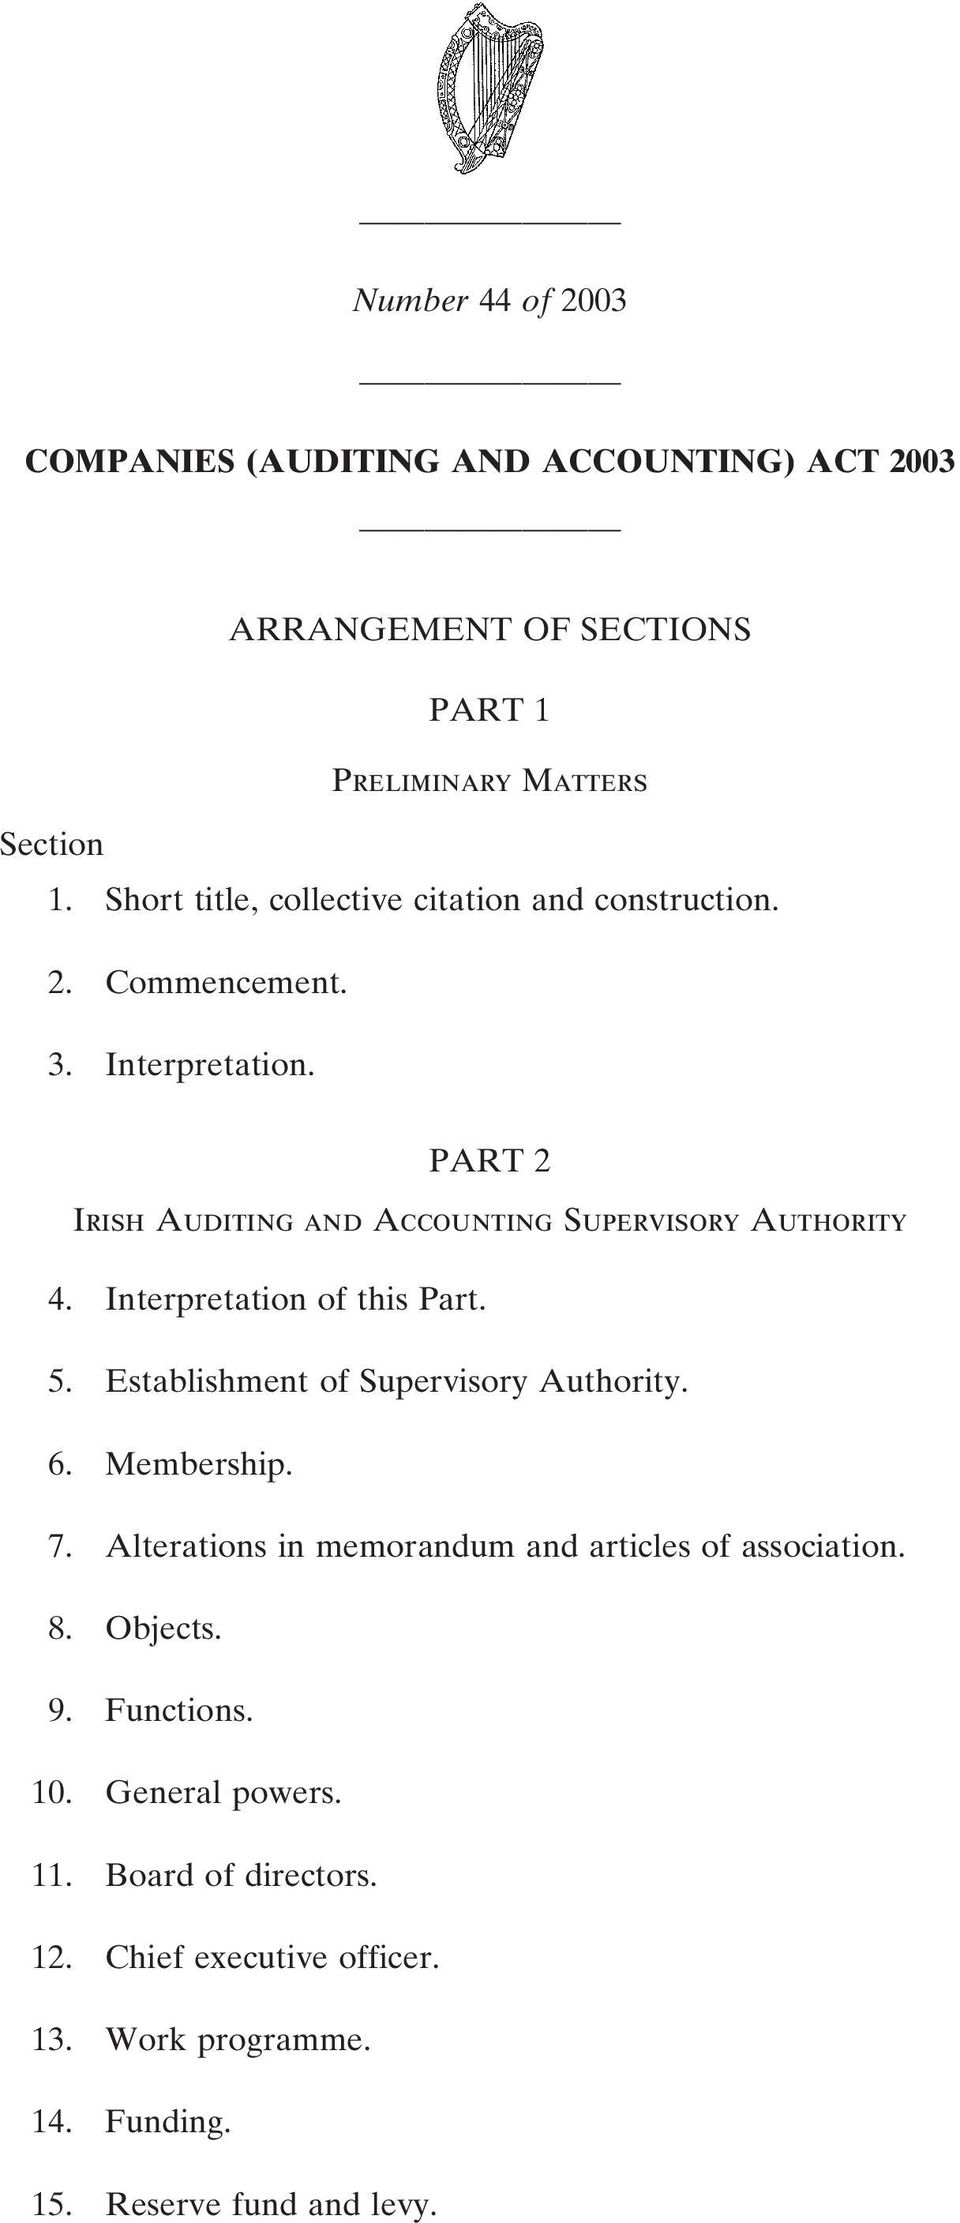 PART 2 Irish Auditing and Accounting Supervisory Authority 4. Interpretation of this Part. 5. Establishment of Supervisory Authority. 6.